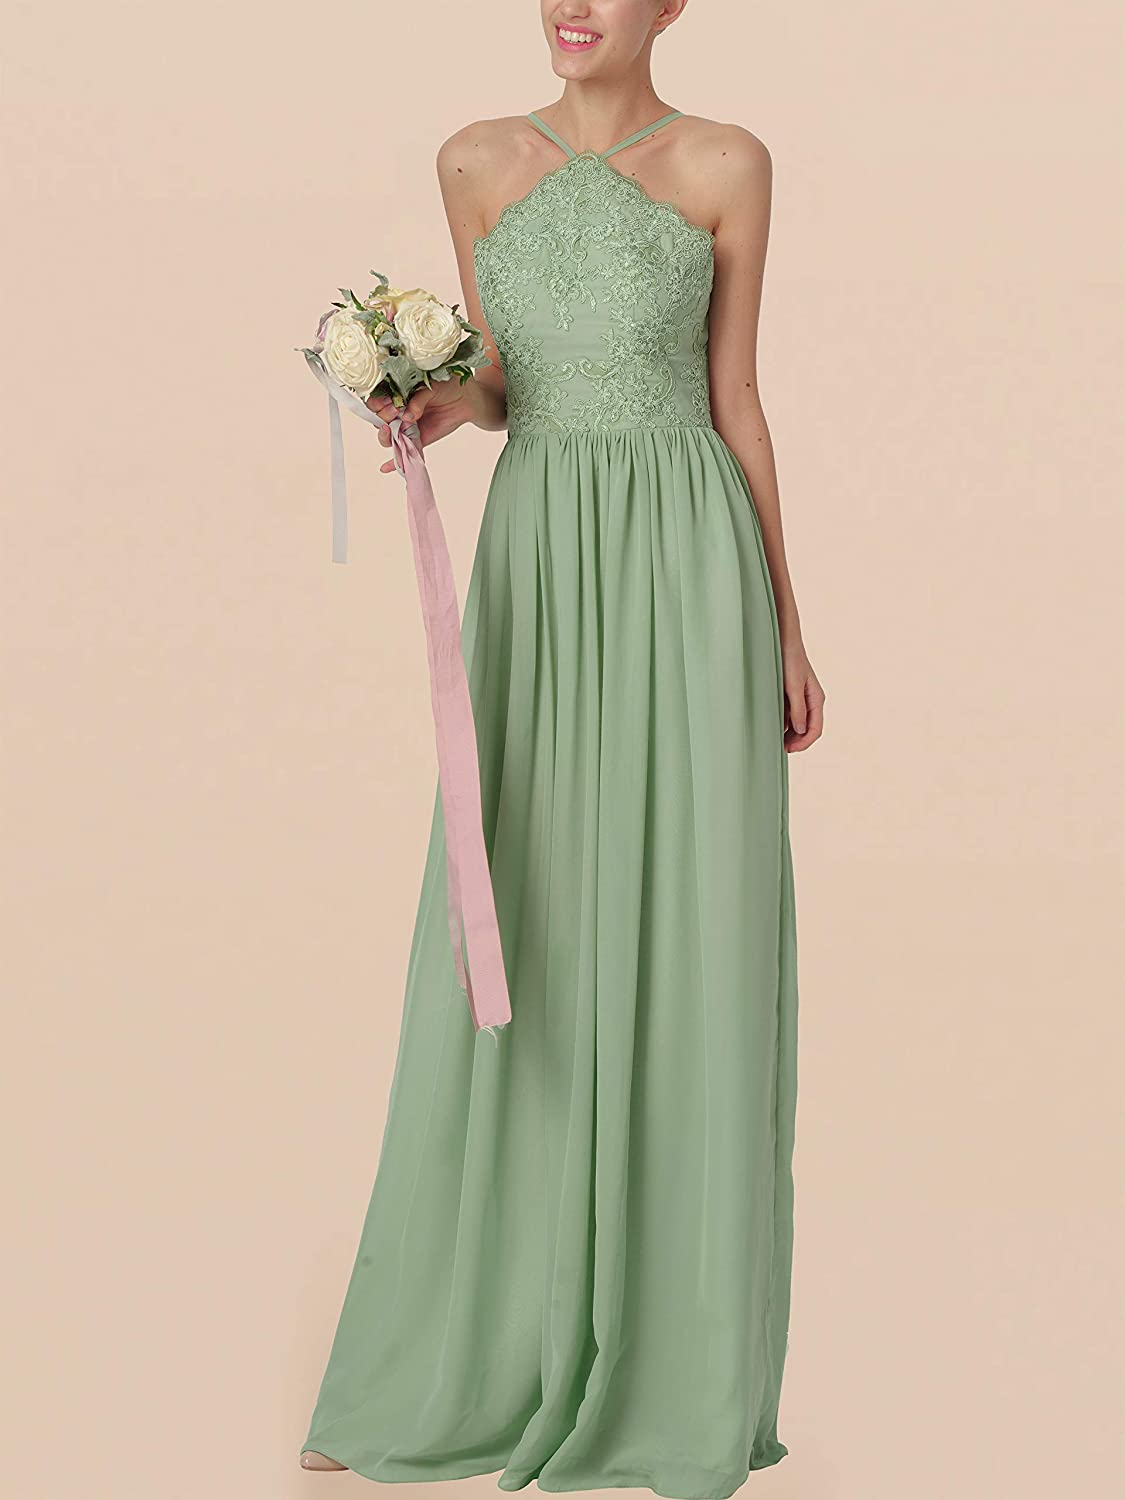 Womens Halter Lace Bodice Bridesmaid Dresses Long Chiffon Formal Wedding Evening Gowns